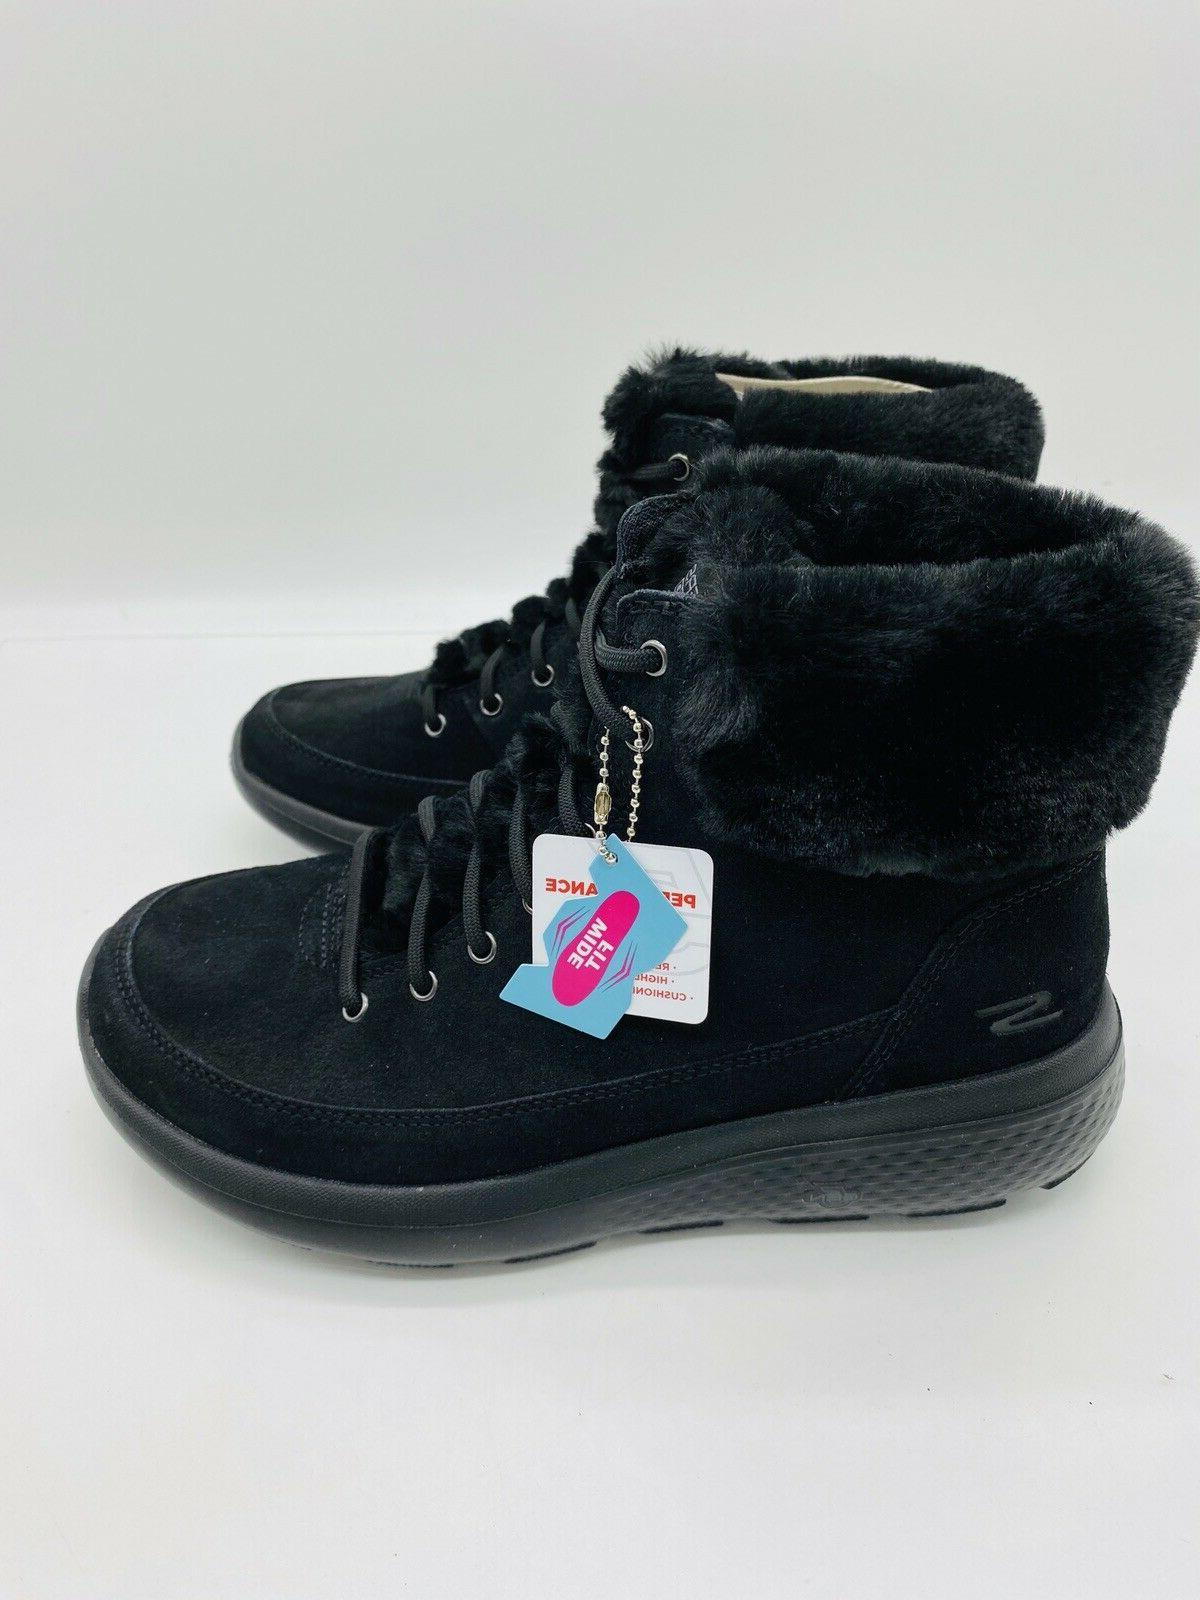 Skechers On-the-Go Chill Resistant Suede Boots Black